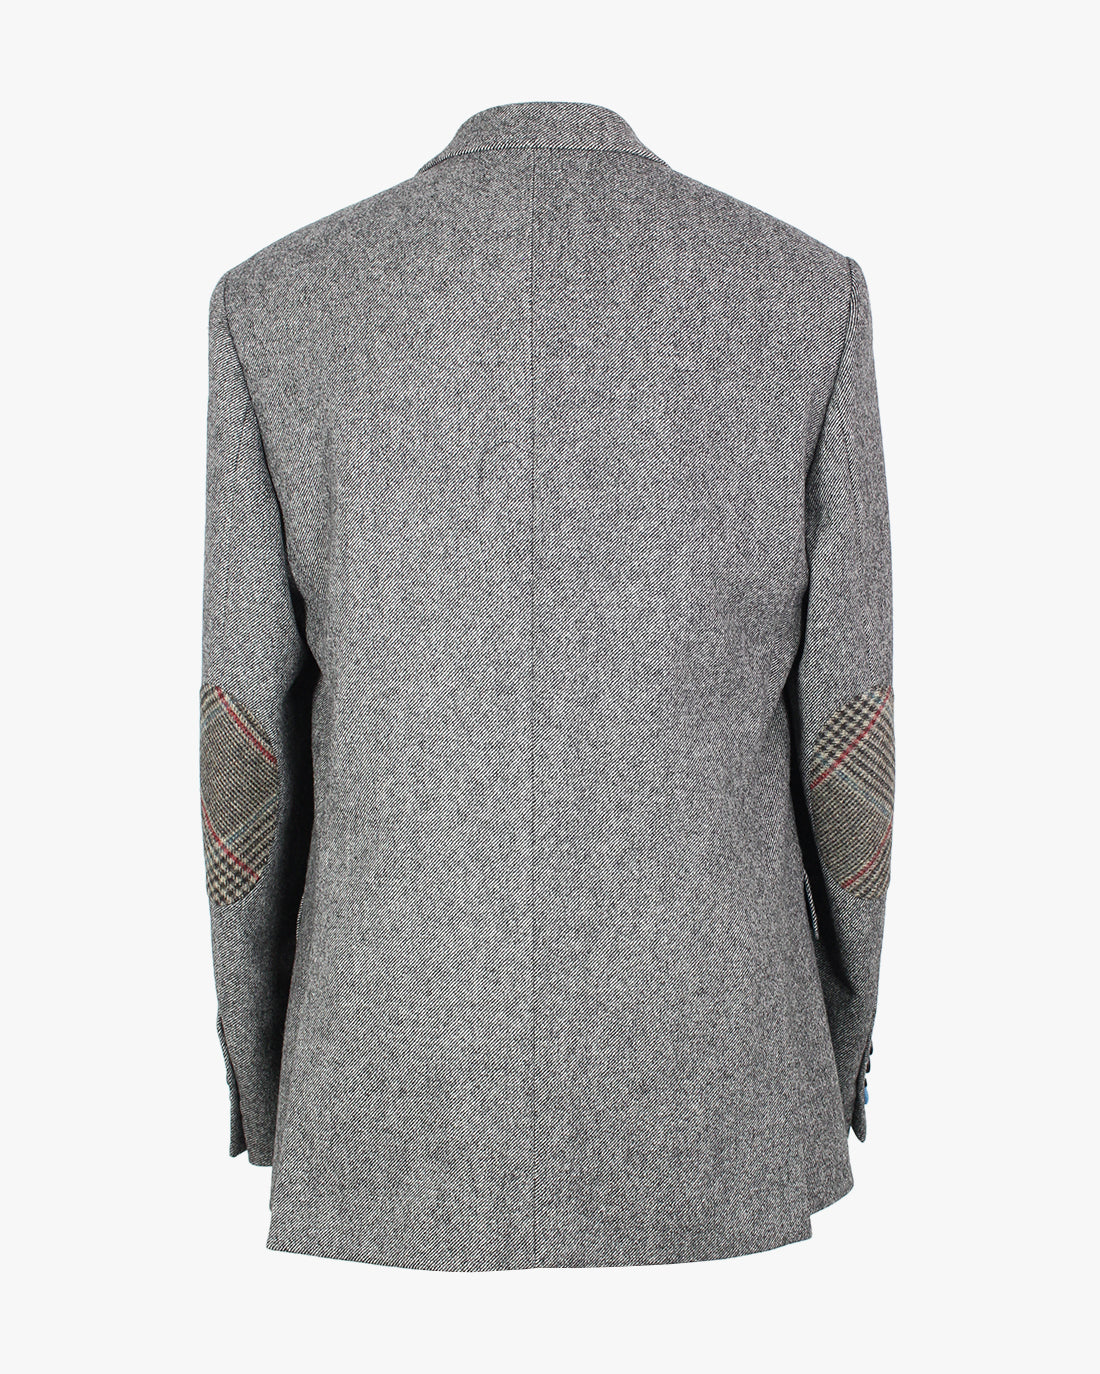 Grey Diagonal Reginald Jacket - Holland Esquire